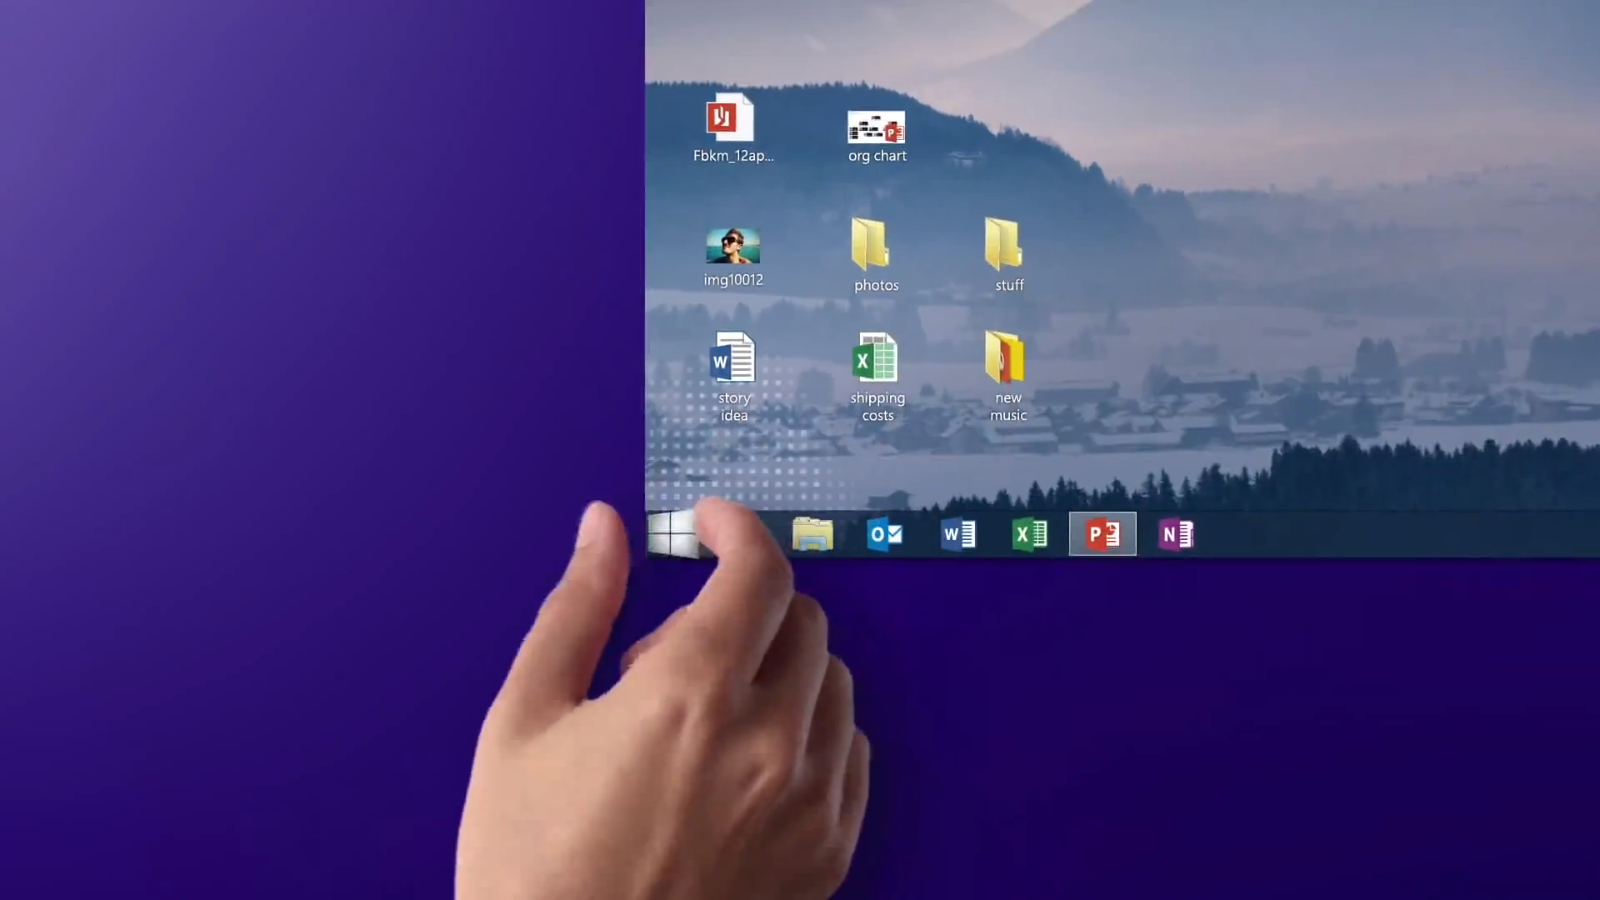 Windows-8.1-video-ad-Start-Button.png